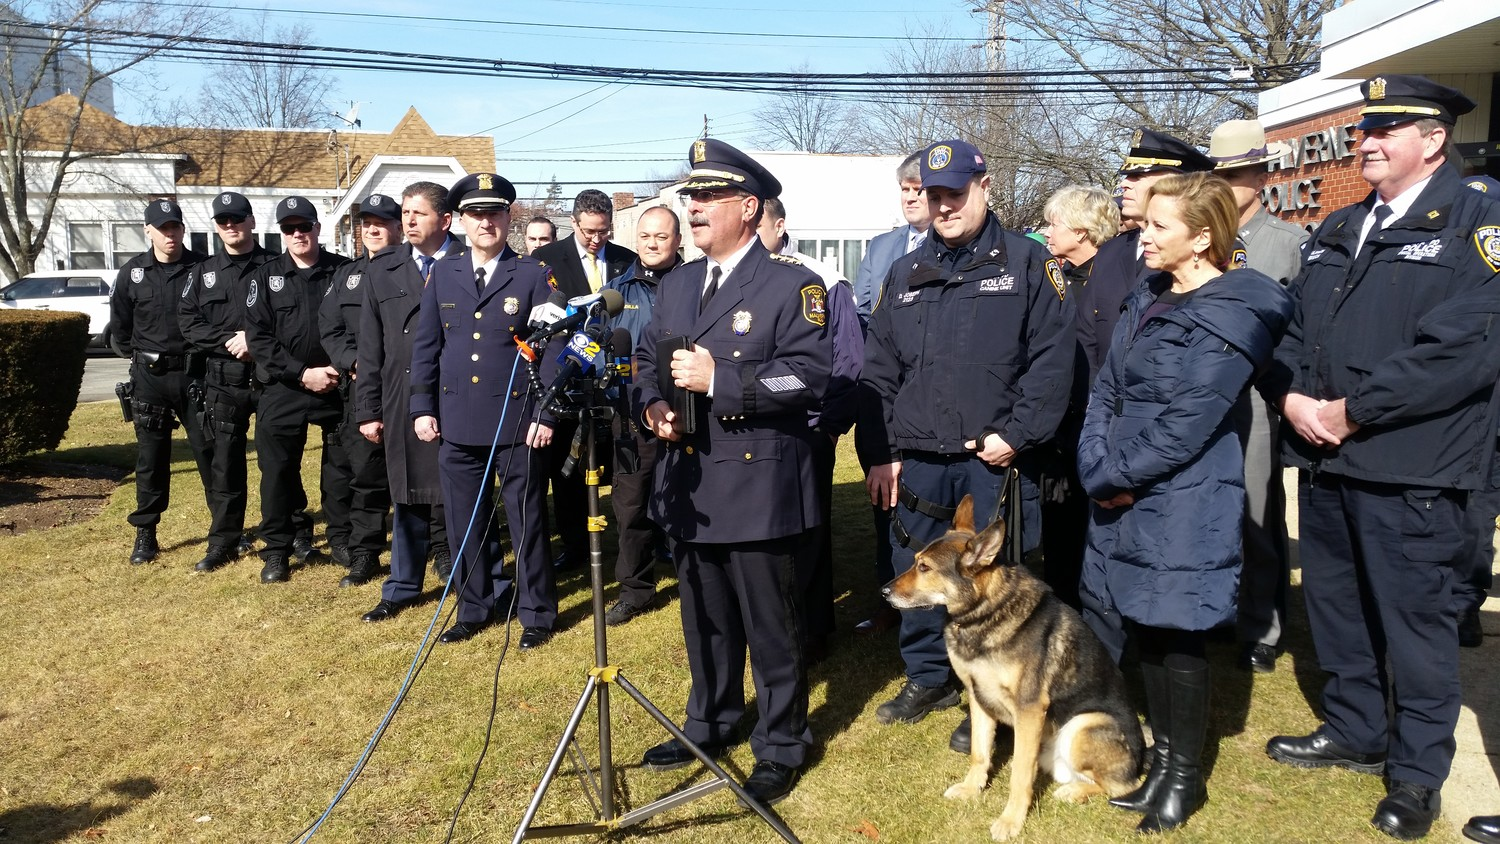 Malverne Police Department Chief John Aresta spoke at a news conference on Tuesday about the community-wide effort to find the missing teen.